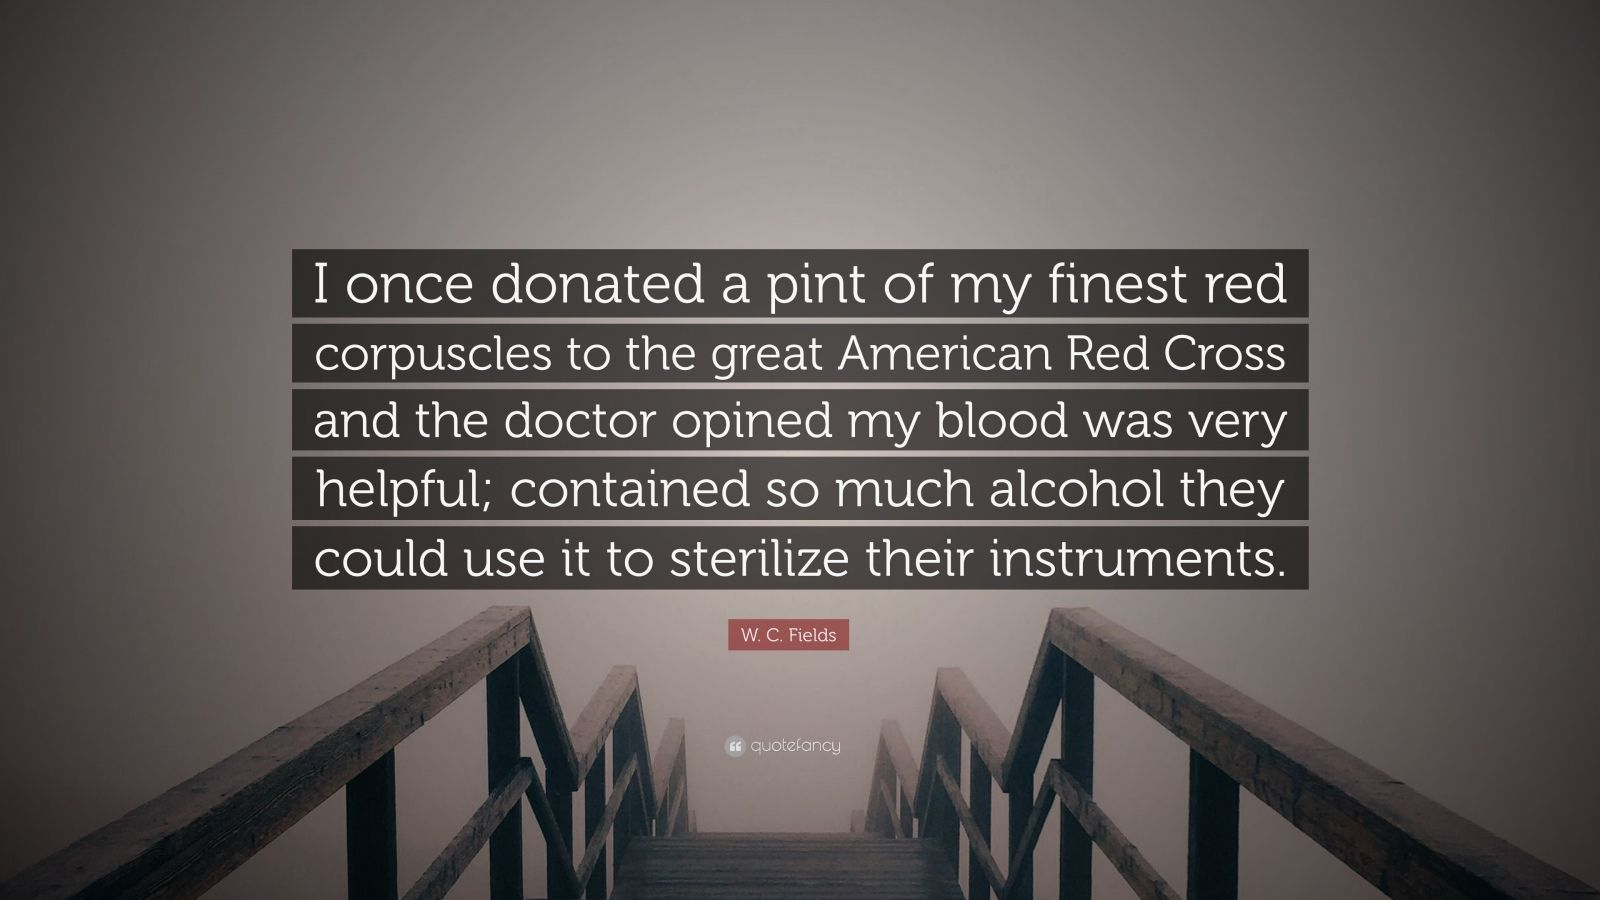 """W. C. Fields Quote: """"I once donated a pint of my finest red corpuscles to the great American Red Cross and the doctor opined my blood was very helpful; contained so much alcohol they could use it to sterilize their instruments."""""""